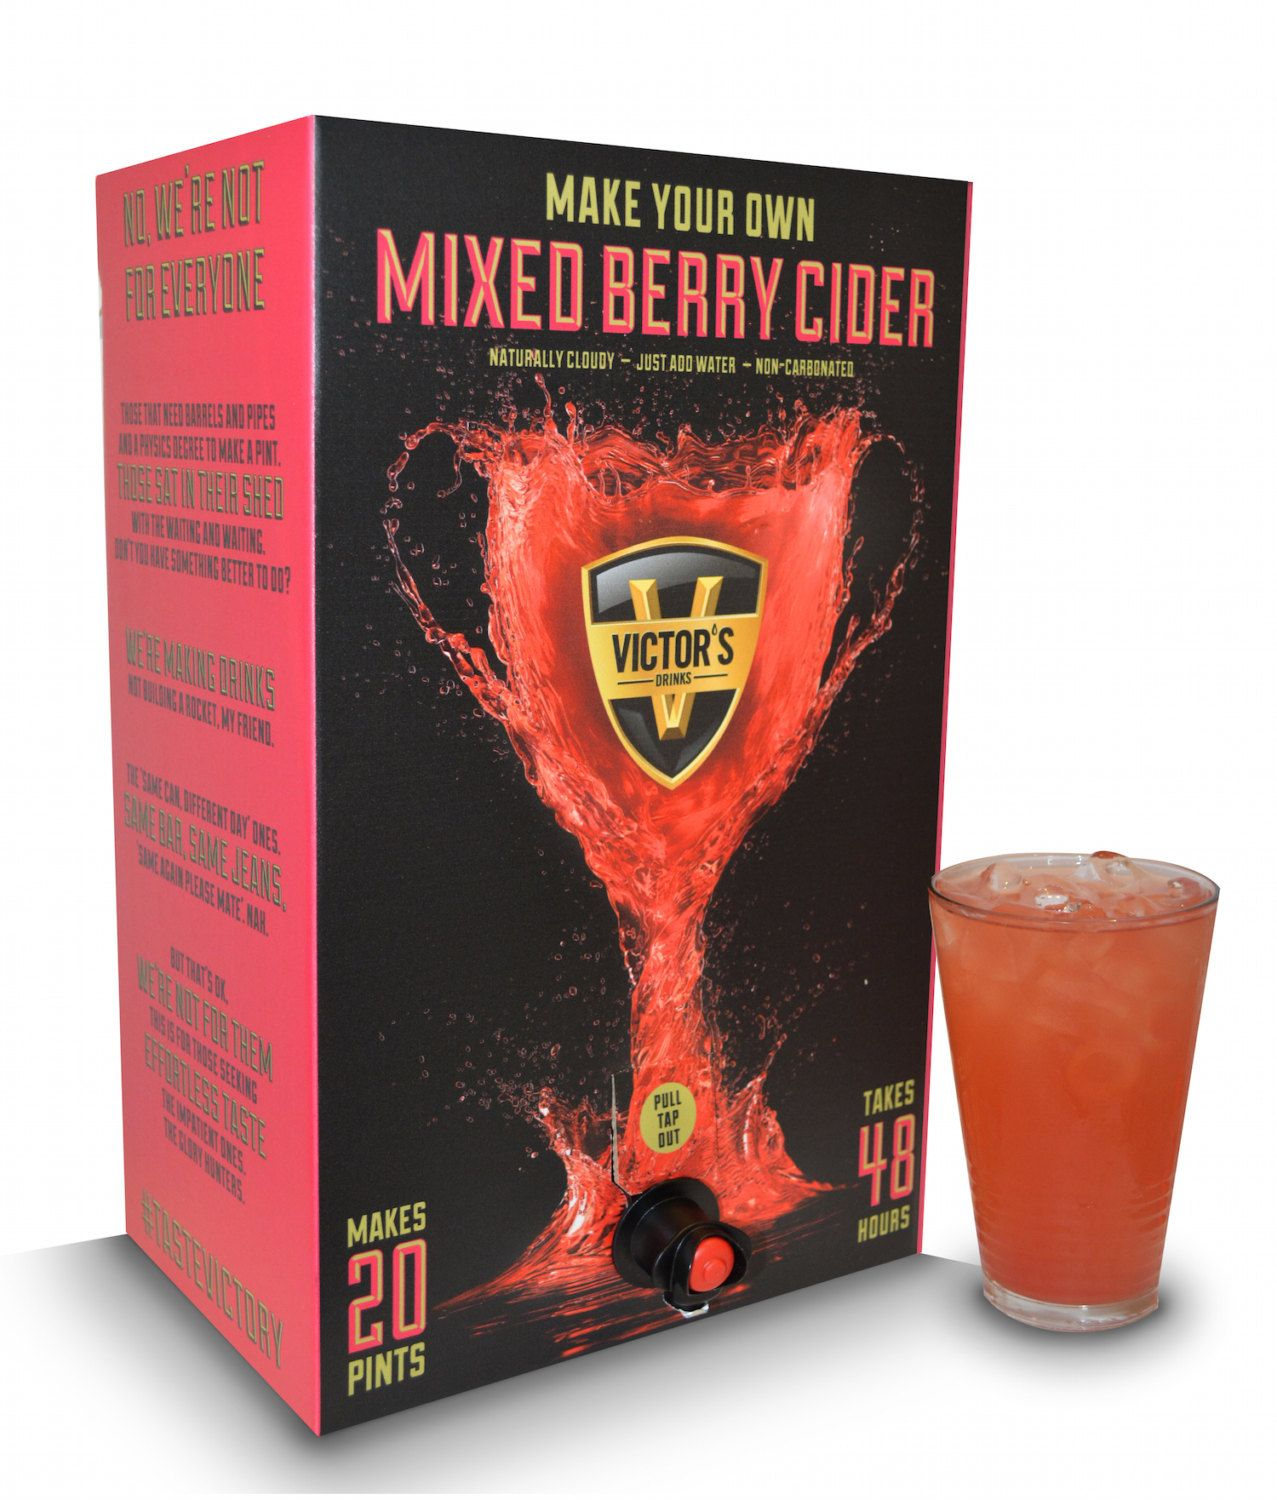 Victors Mixed Berry Cider Kit Homebrew Freepost In Uk Great Gift Idea Make In 48 Hrs Great For Parties Mixed Berries Cider Gifts Home Brewing